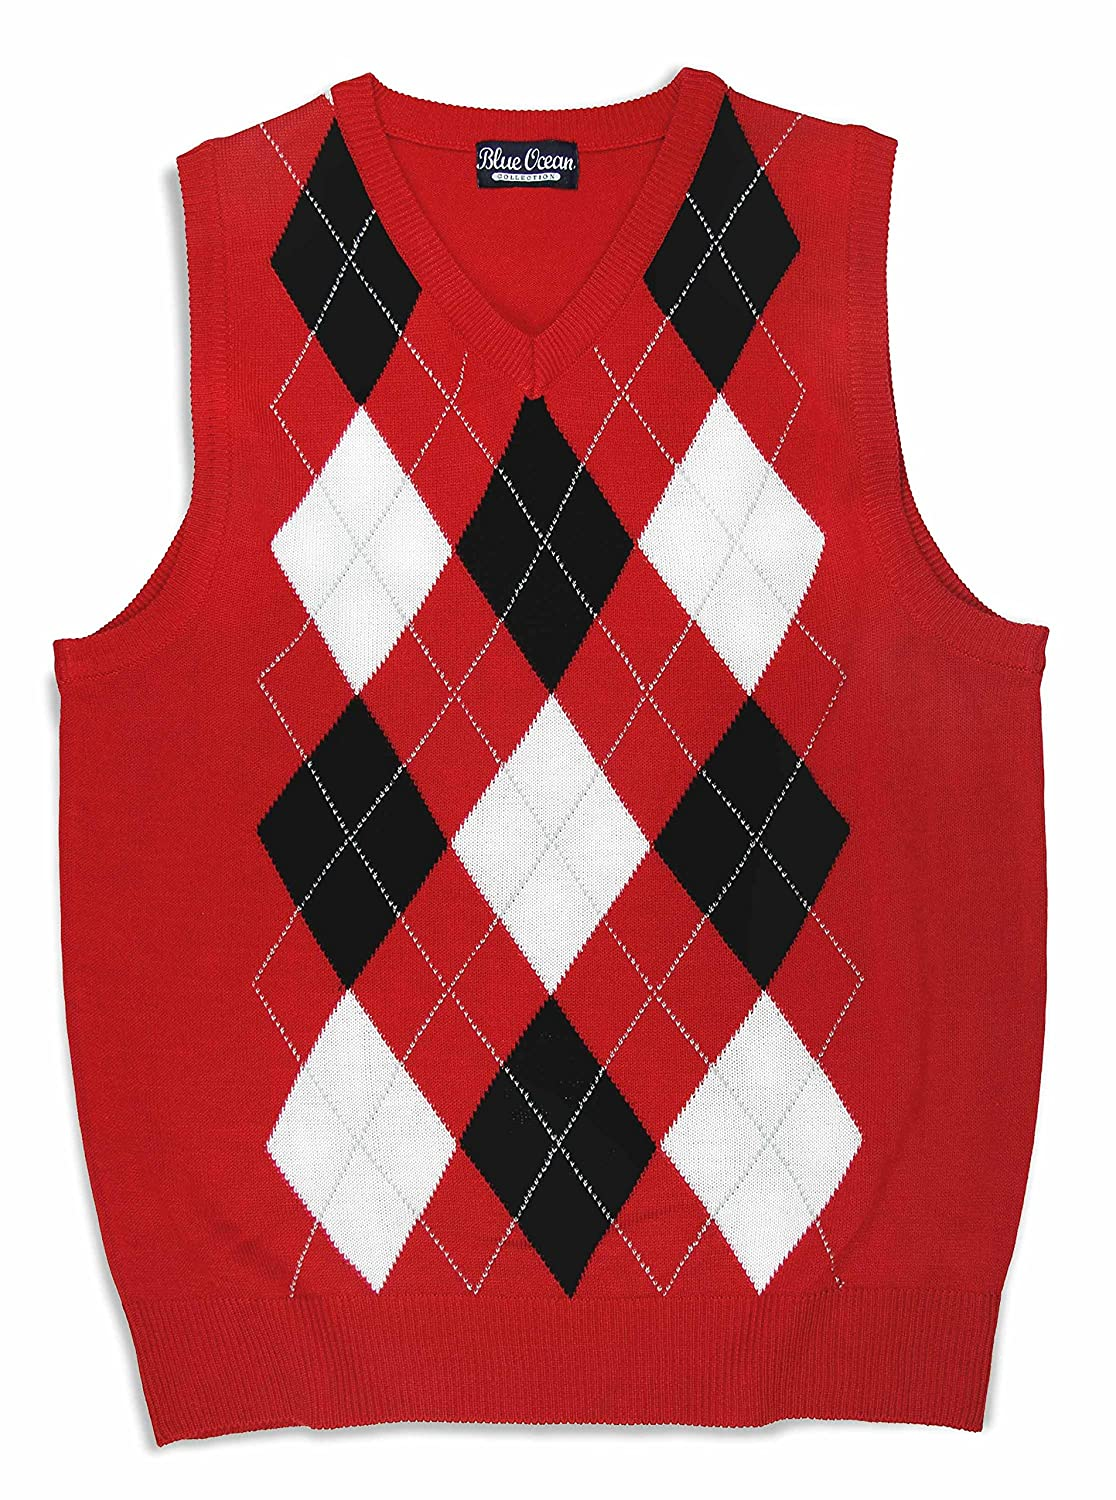 Blue Ocean Kids Argyle Sweater Vest SV-255-UKIDS